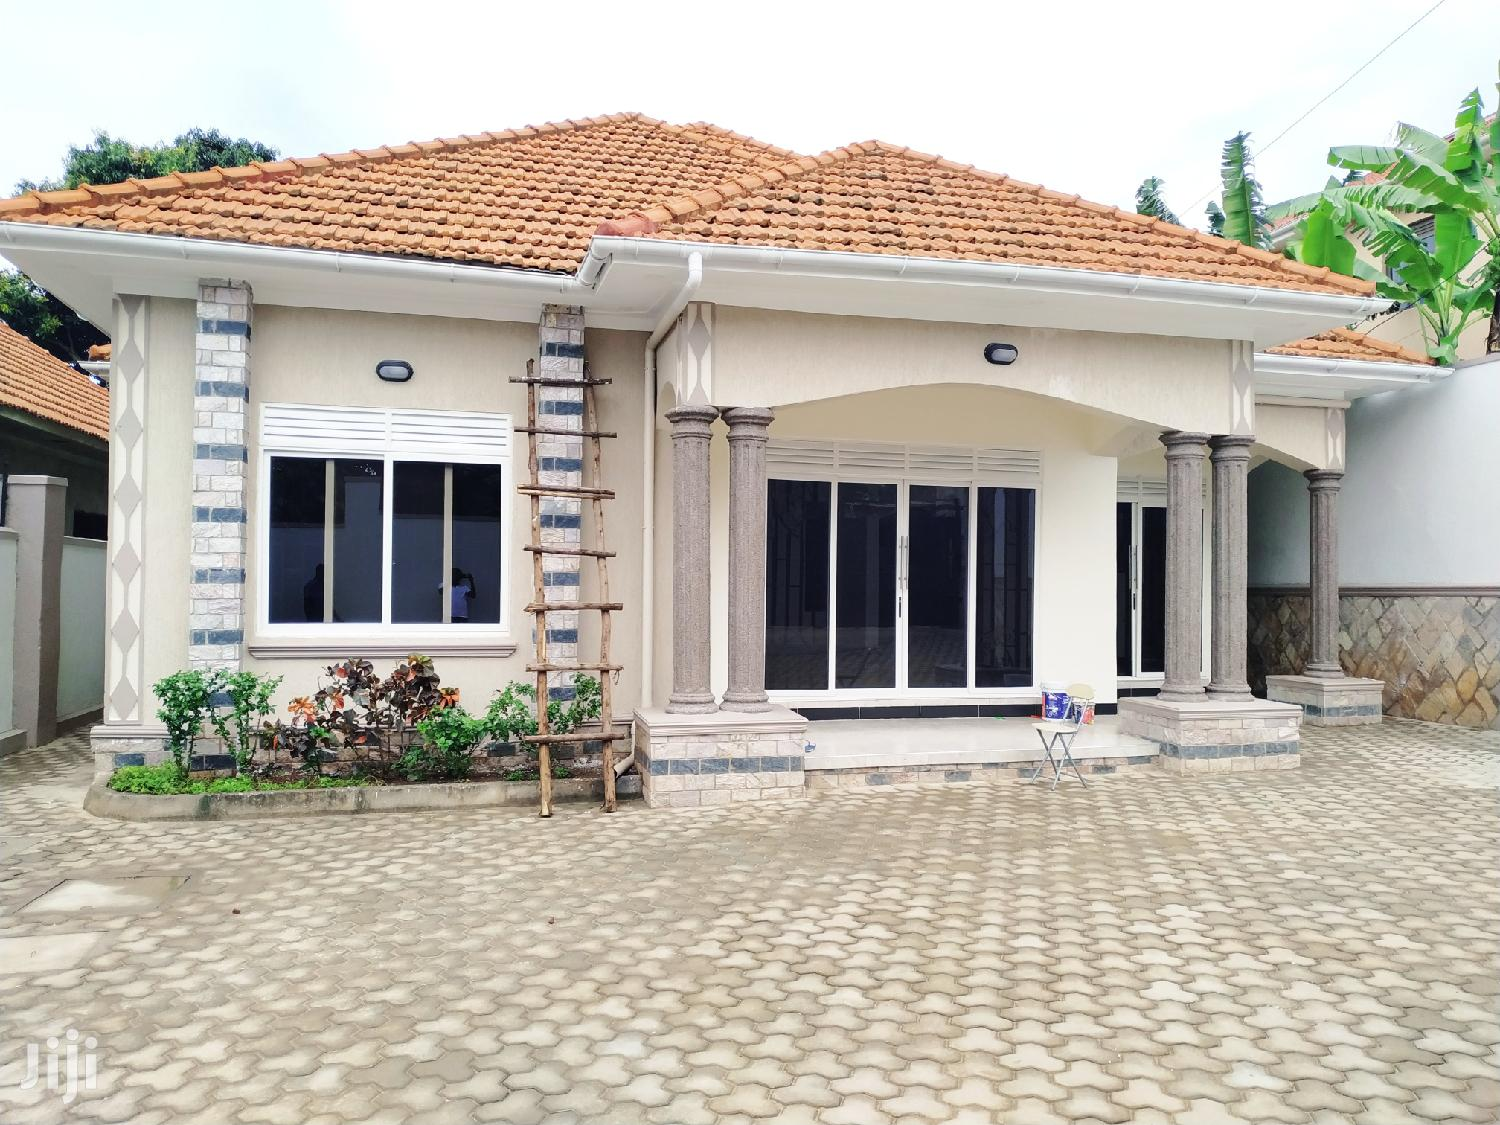 3 Bedroom House For Sale In Kira Mamerito Road